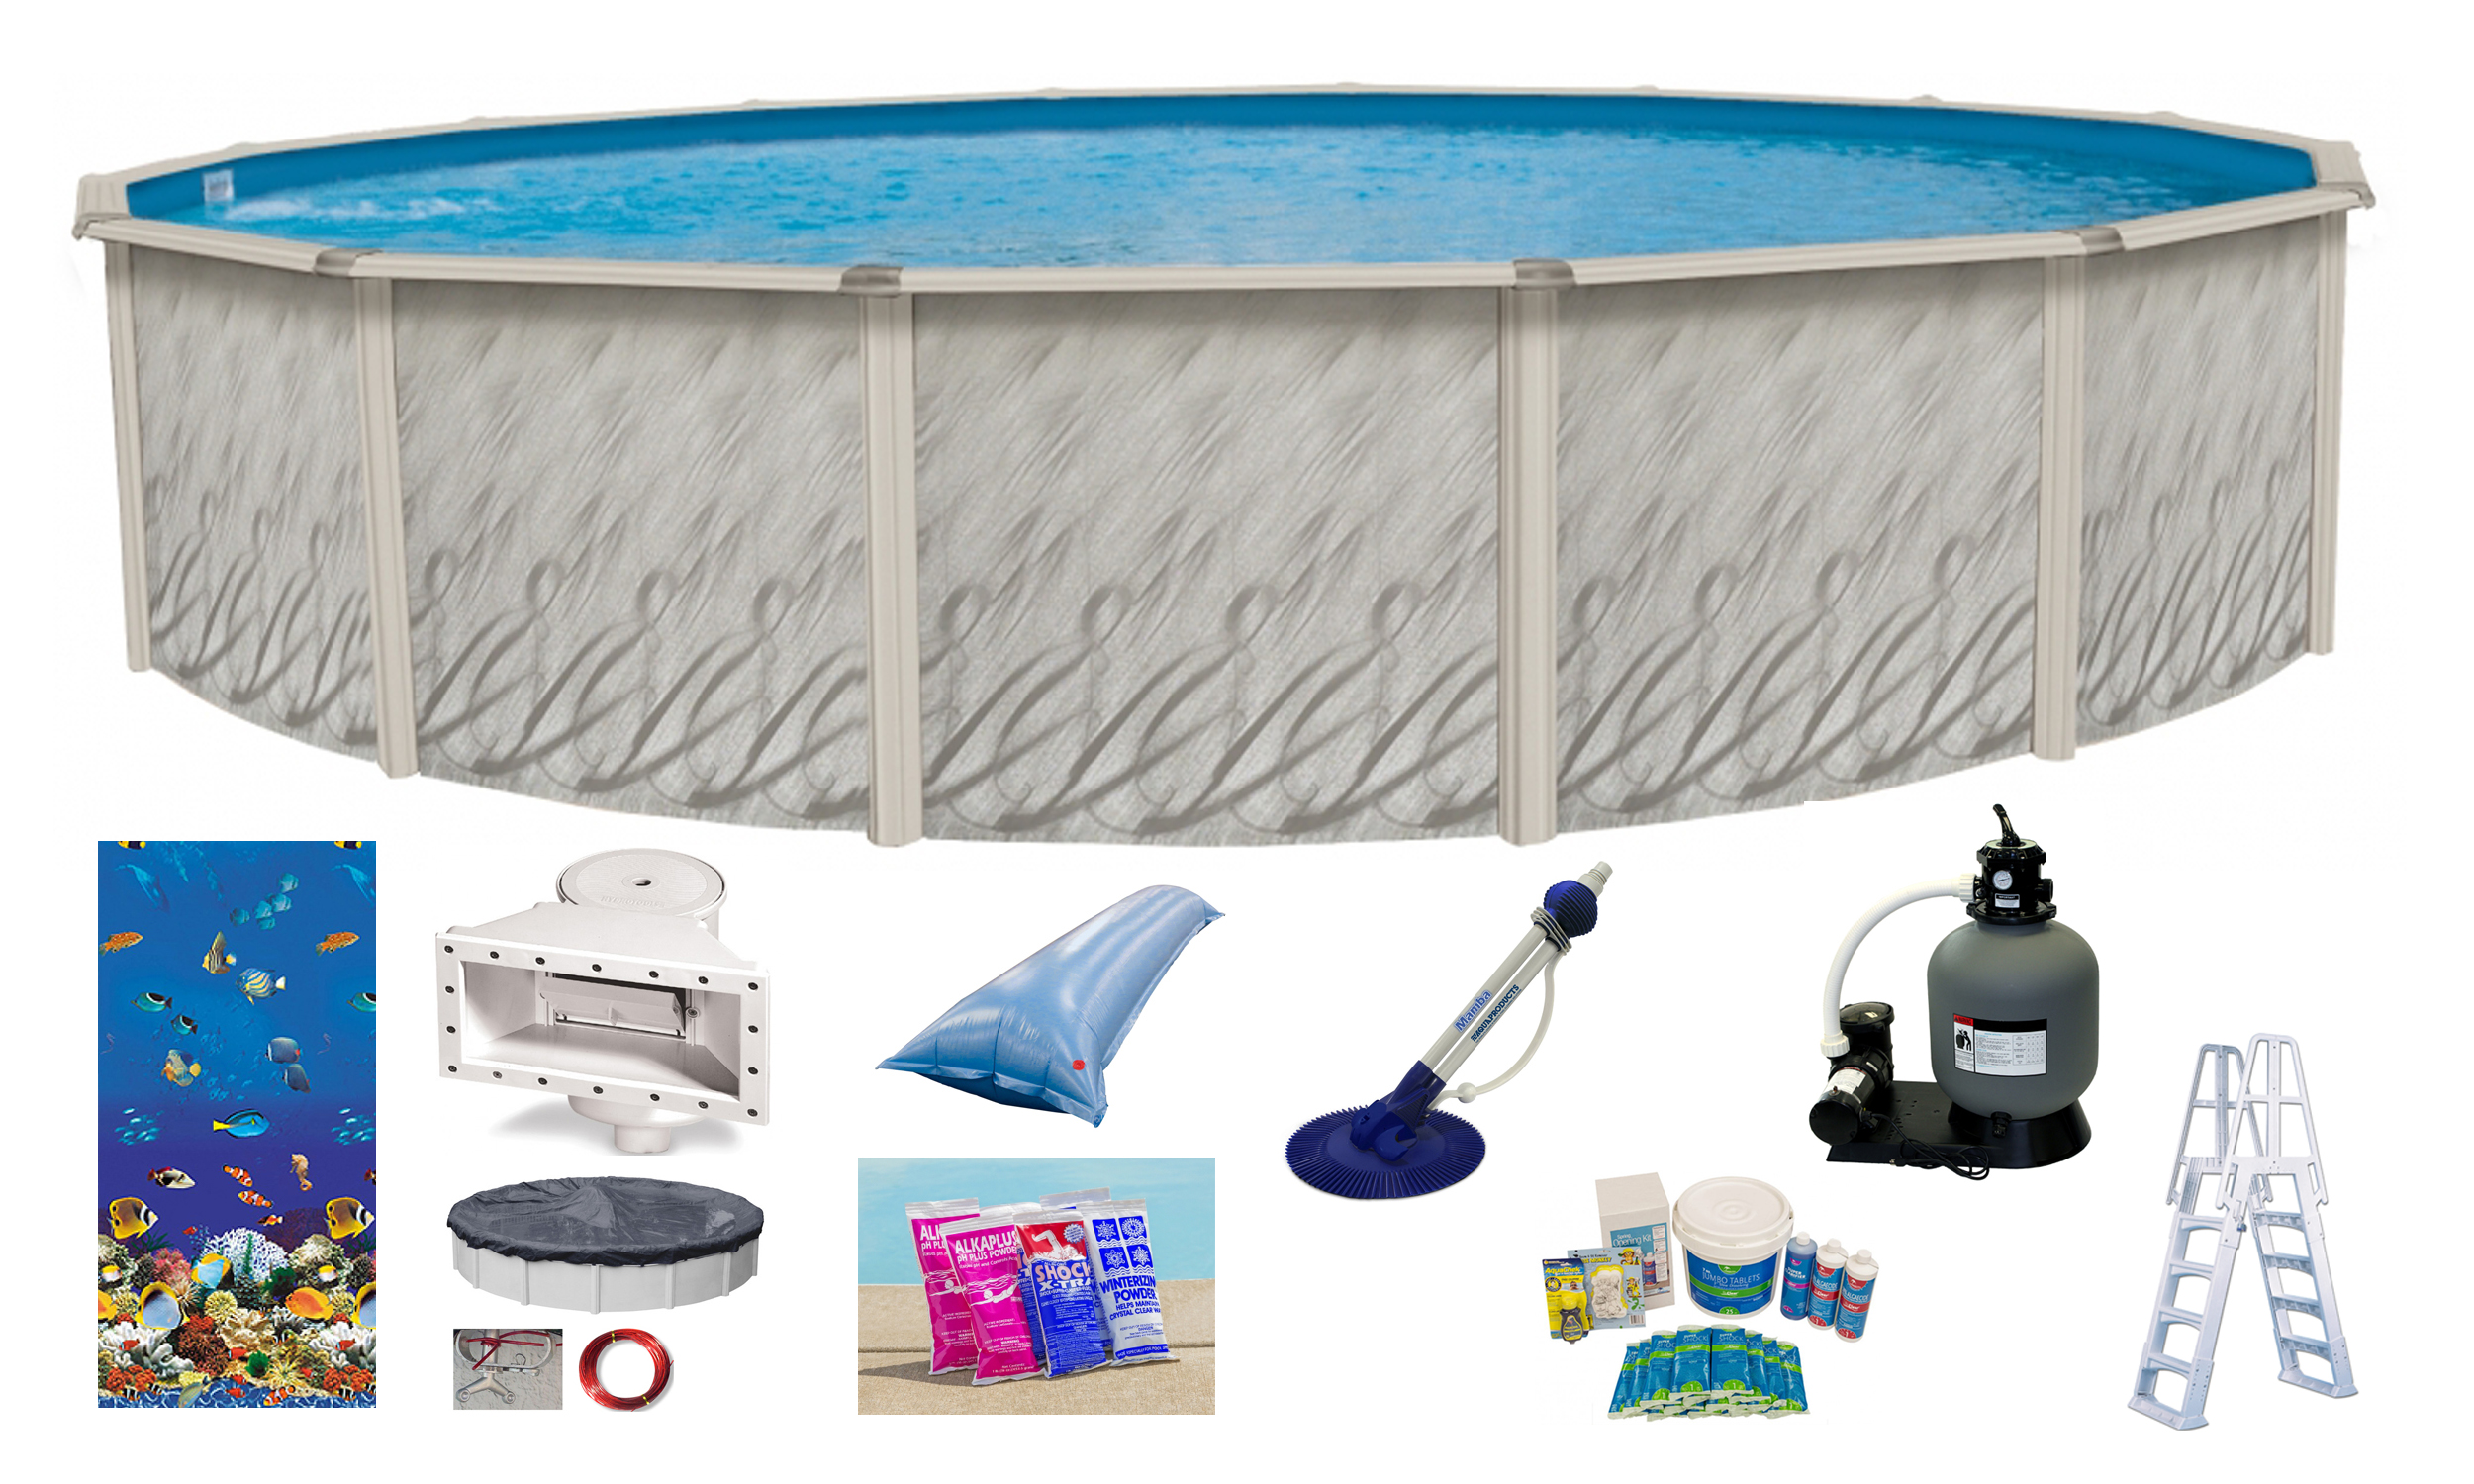 18 39 X52 Round Meadows Above Ground Swimming Pool W Caribbean Liner Kit Pack Ebay